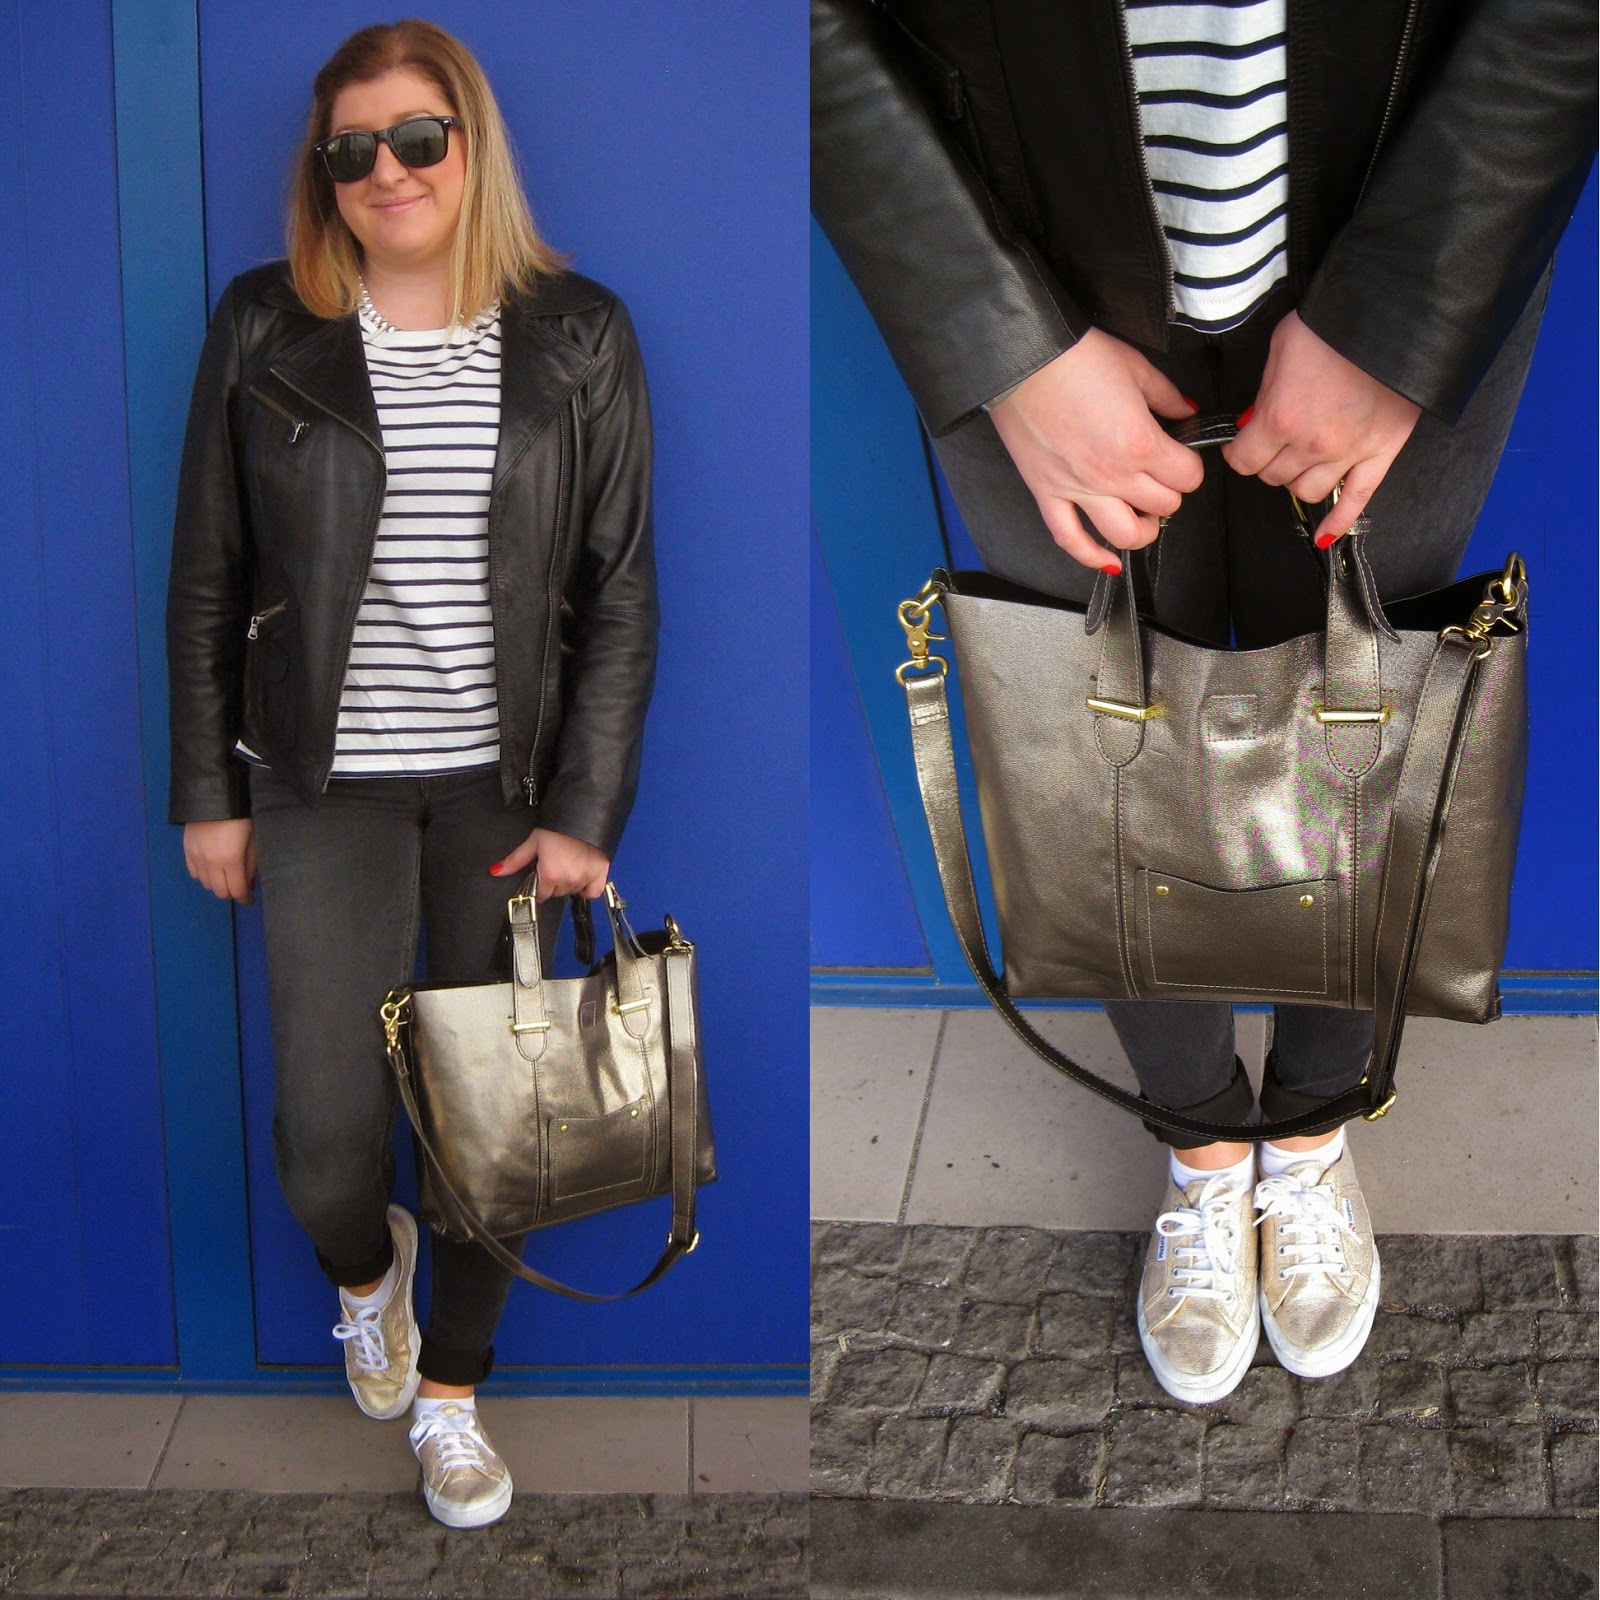 http://fashionsbit.blogspot.com.tr/2014/04/poland-katowice-outfit.html